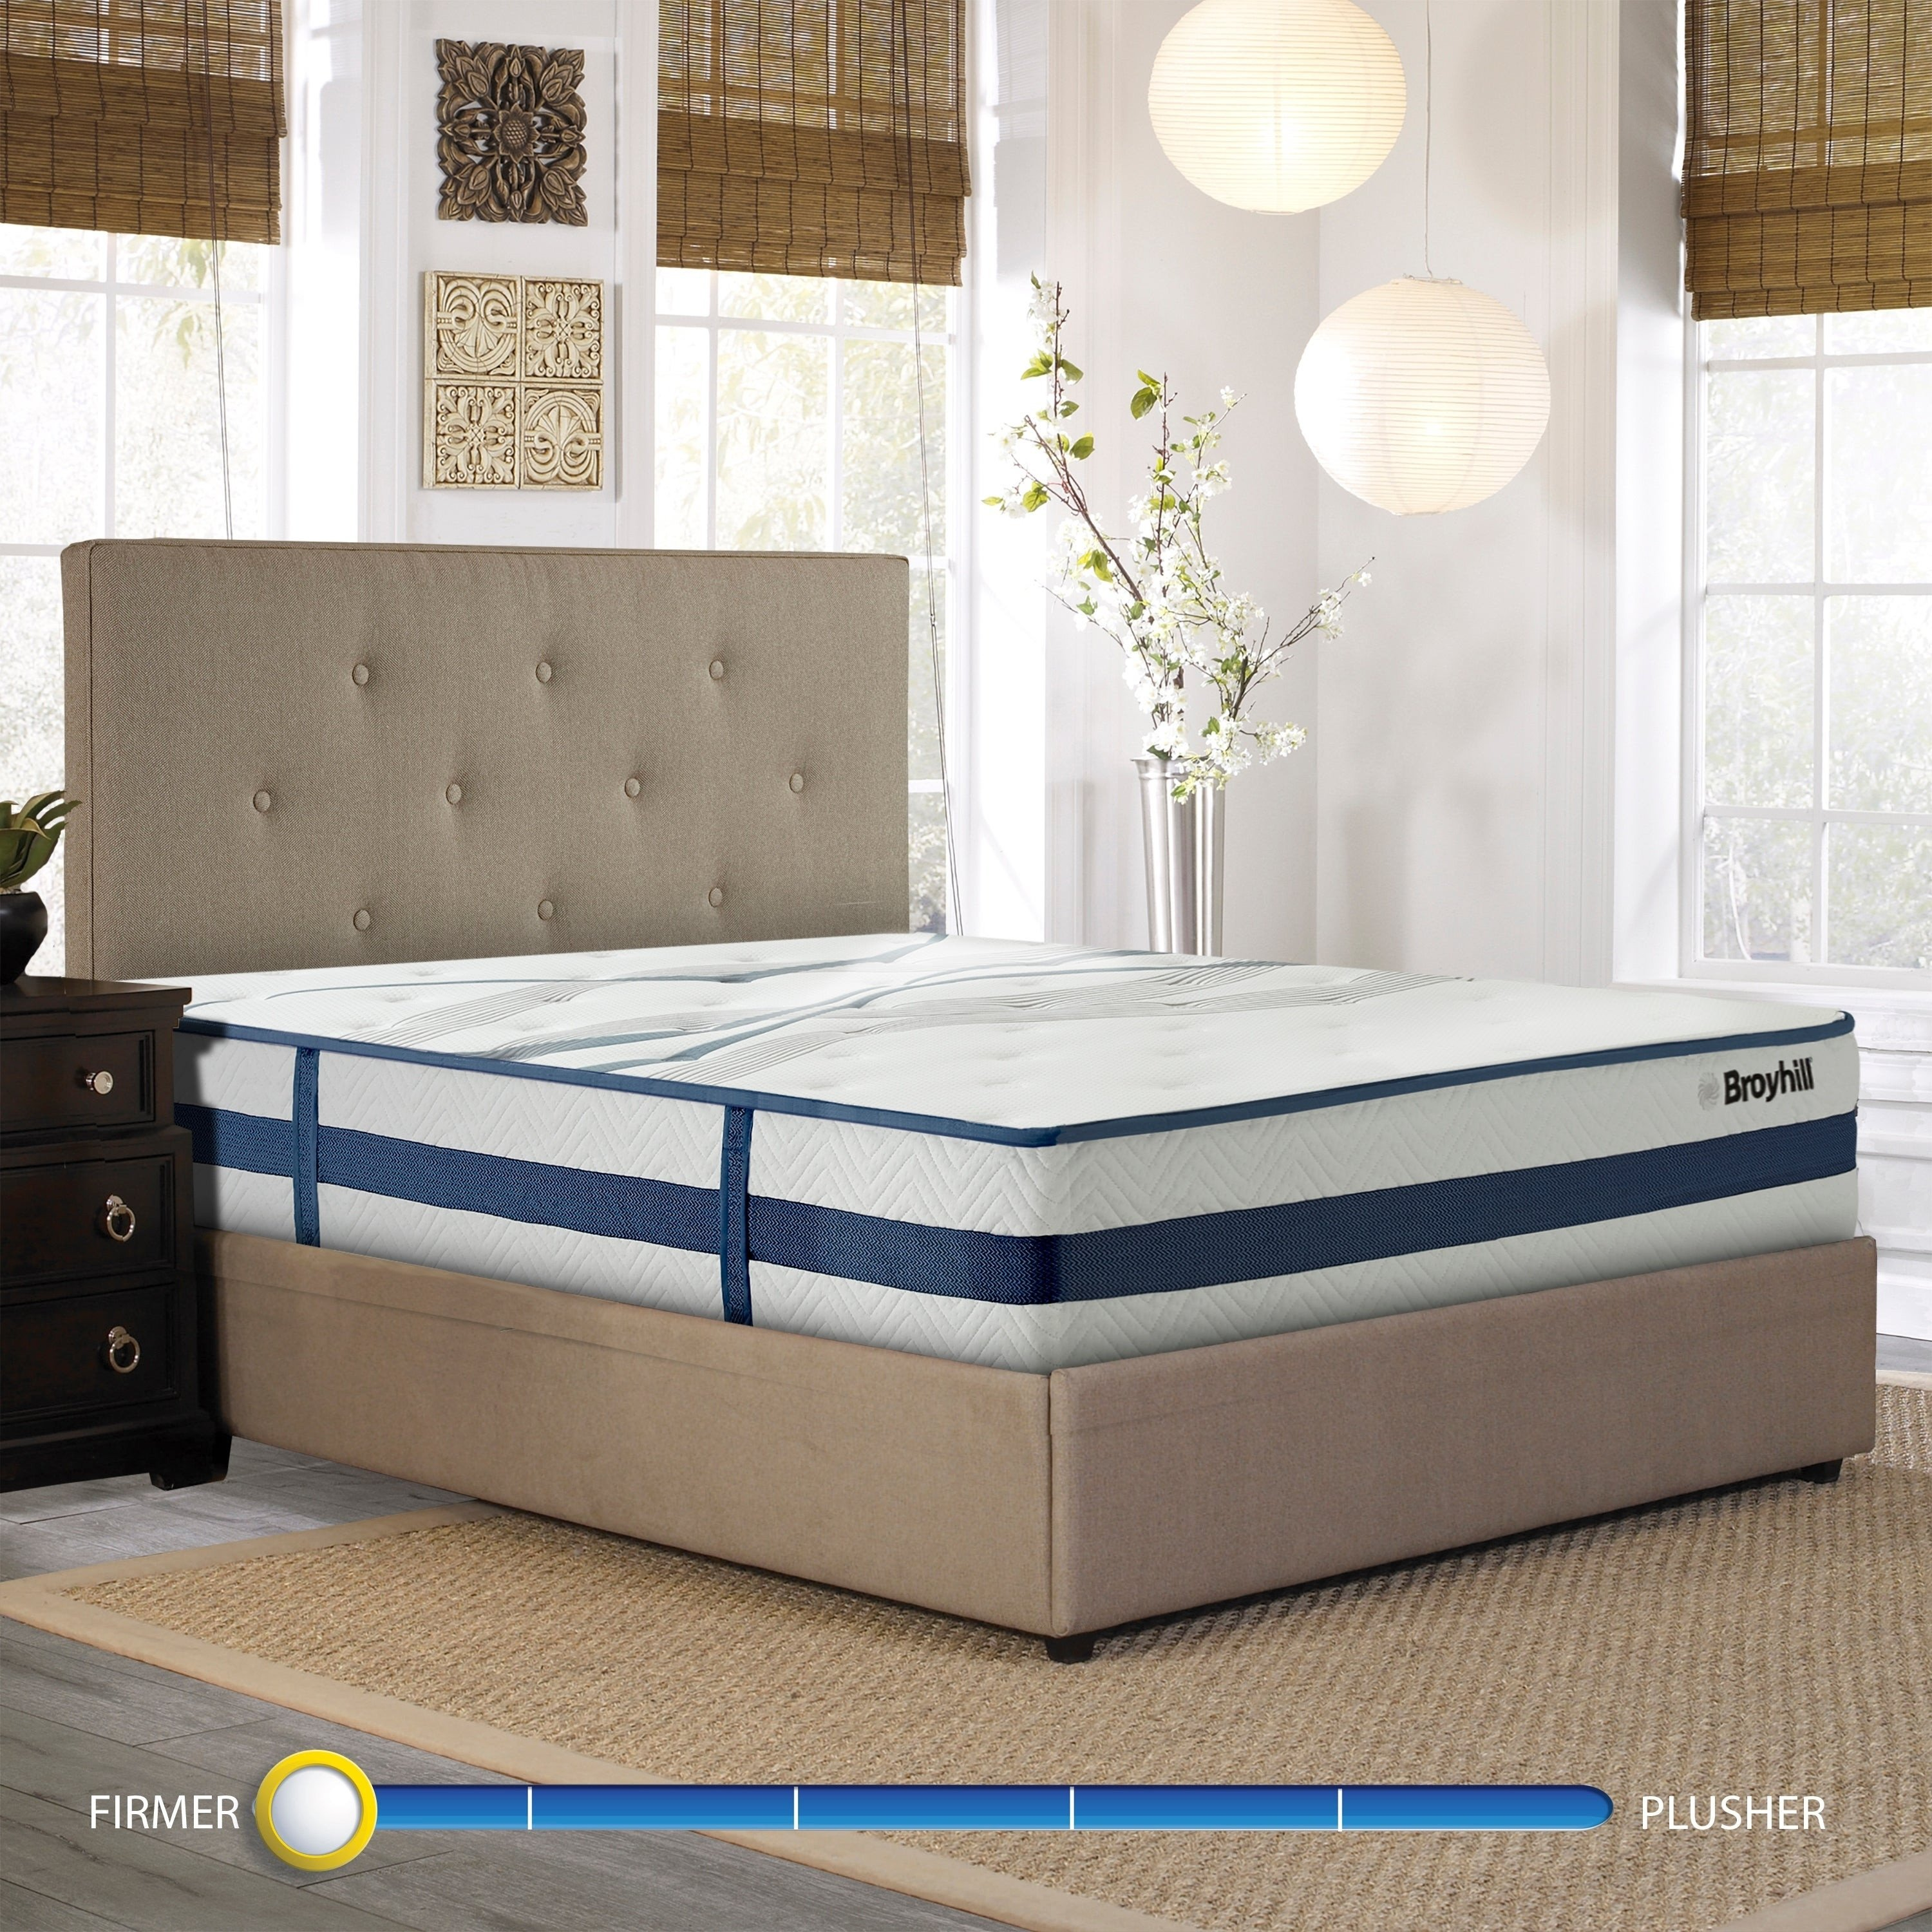 Broyhill King Bedroom Set Unique Broyhill Natural Spring Sapphire Earl 11 Inch Firm Cooling Hybrid Mattress